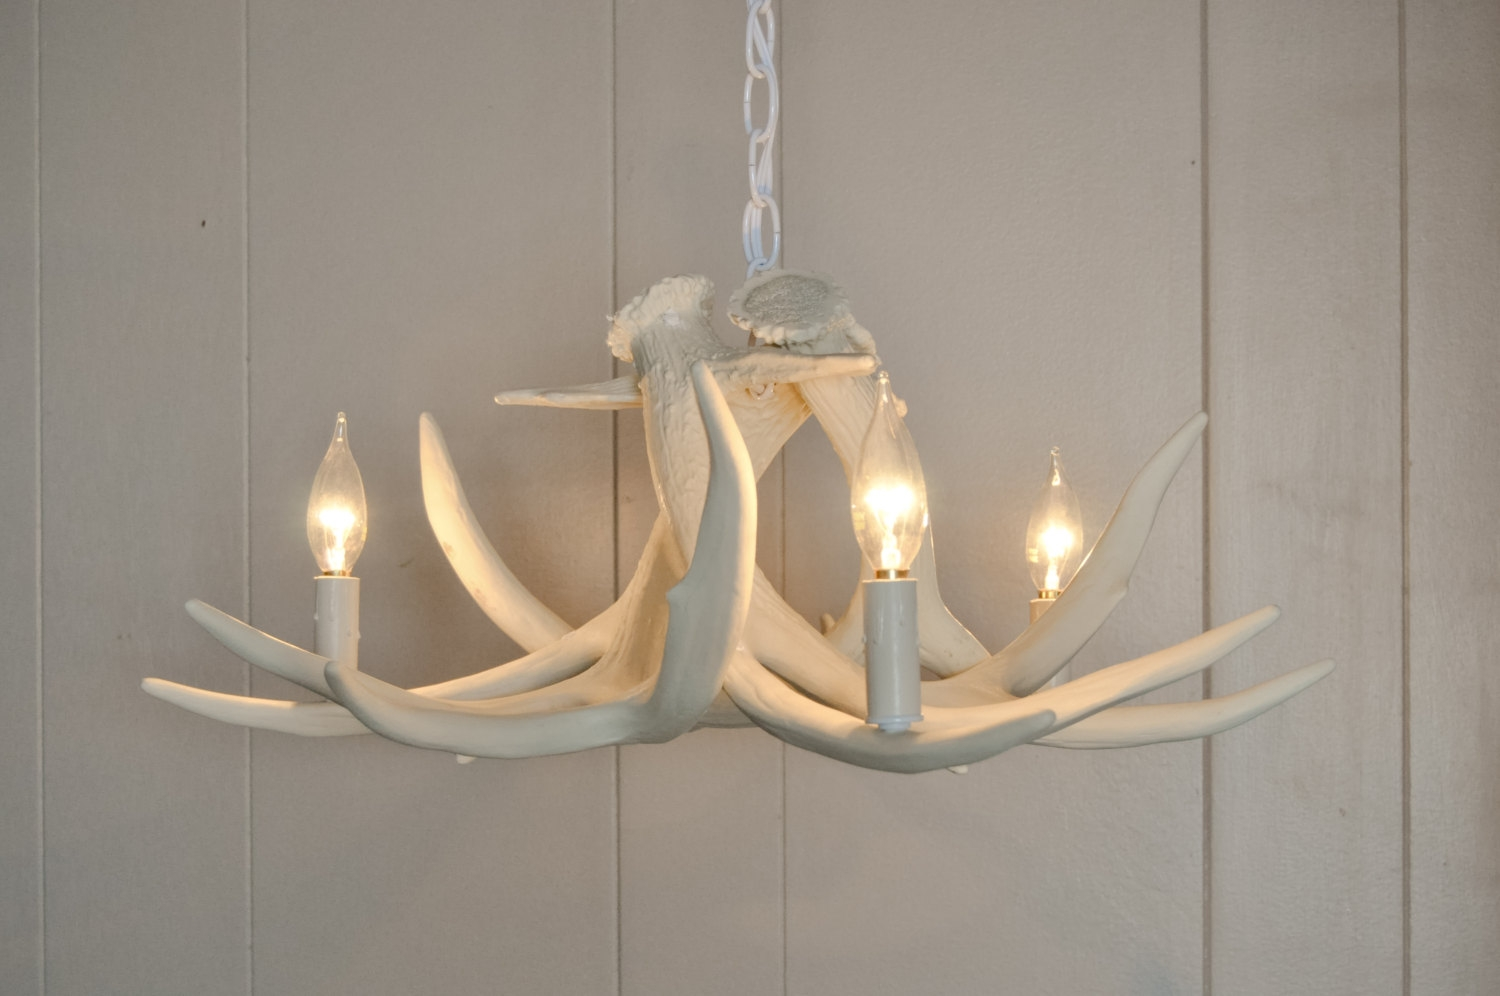 Faux Antler Chandelier White Roselawnlutheran With Regard To Modern Antler Chandelier (Image 6 of 15)